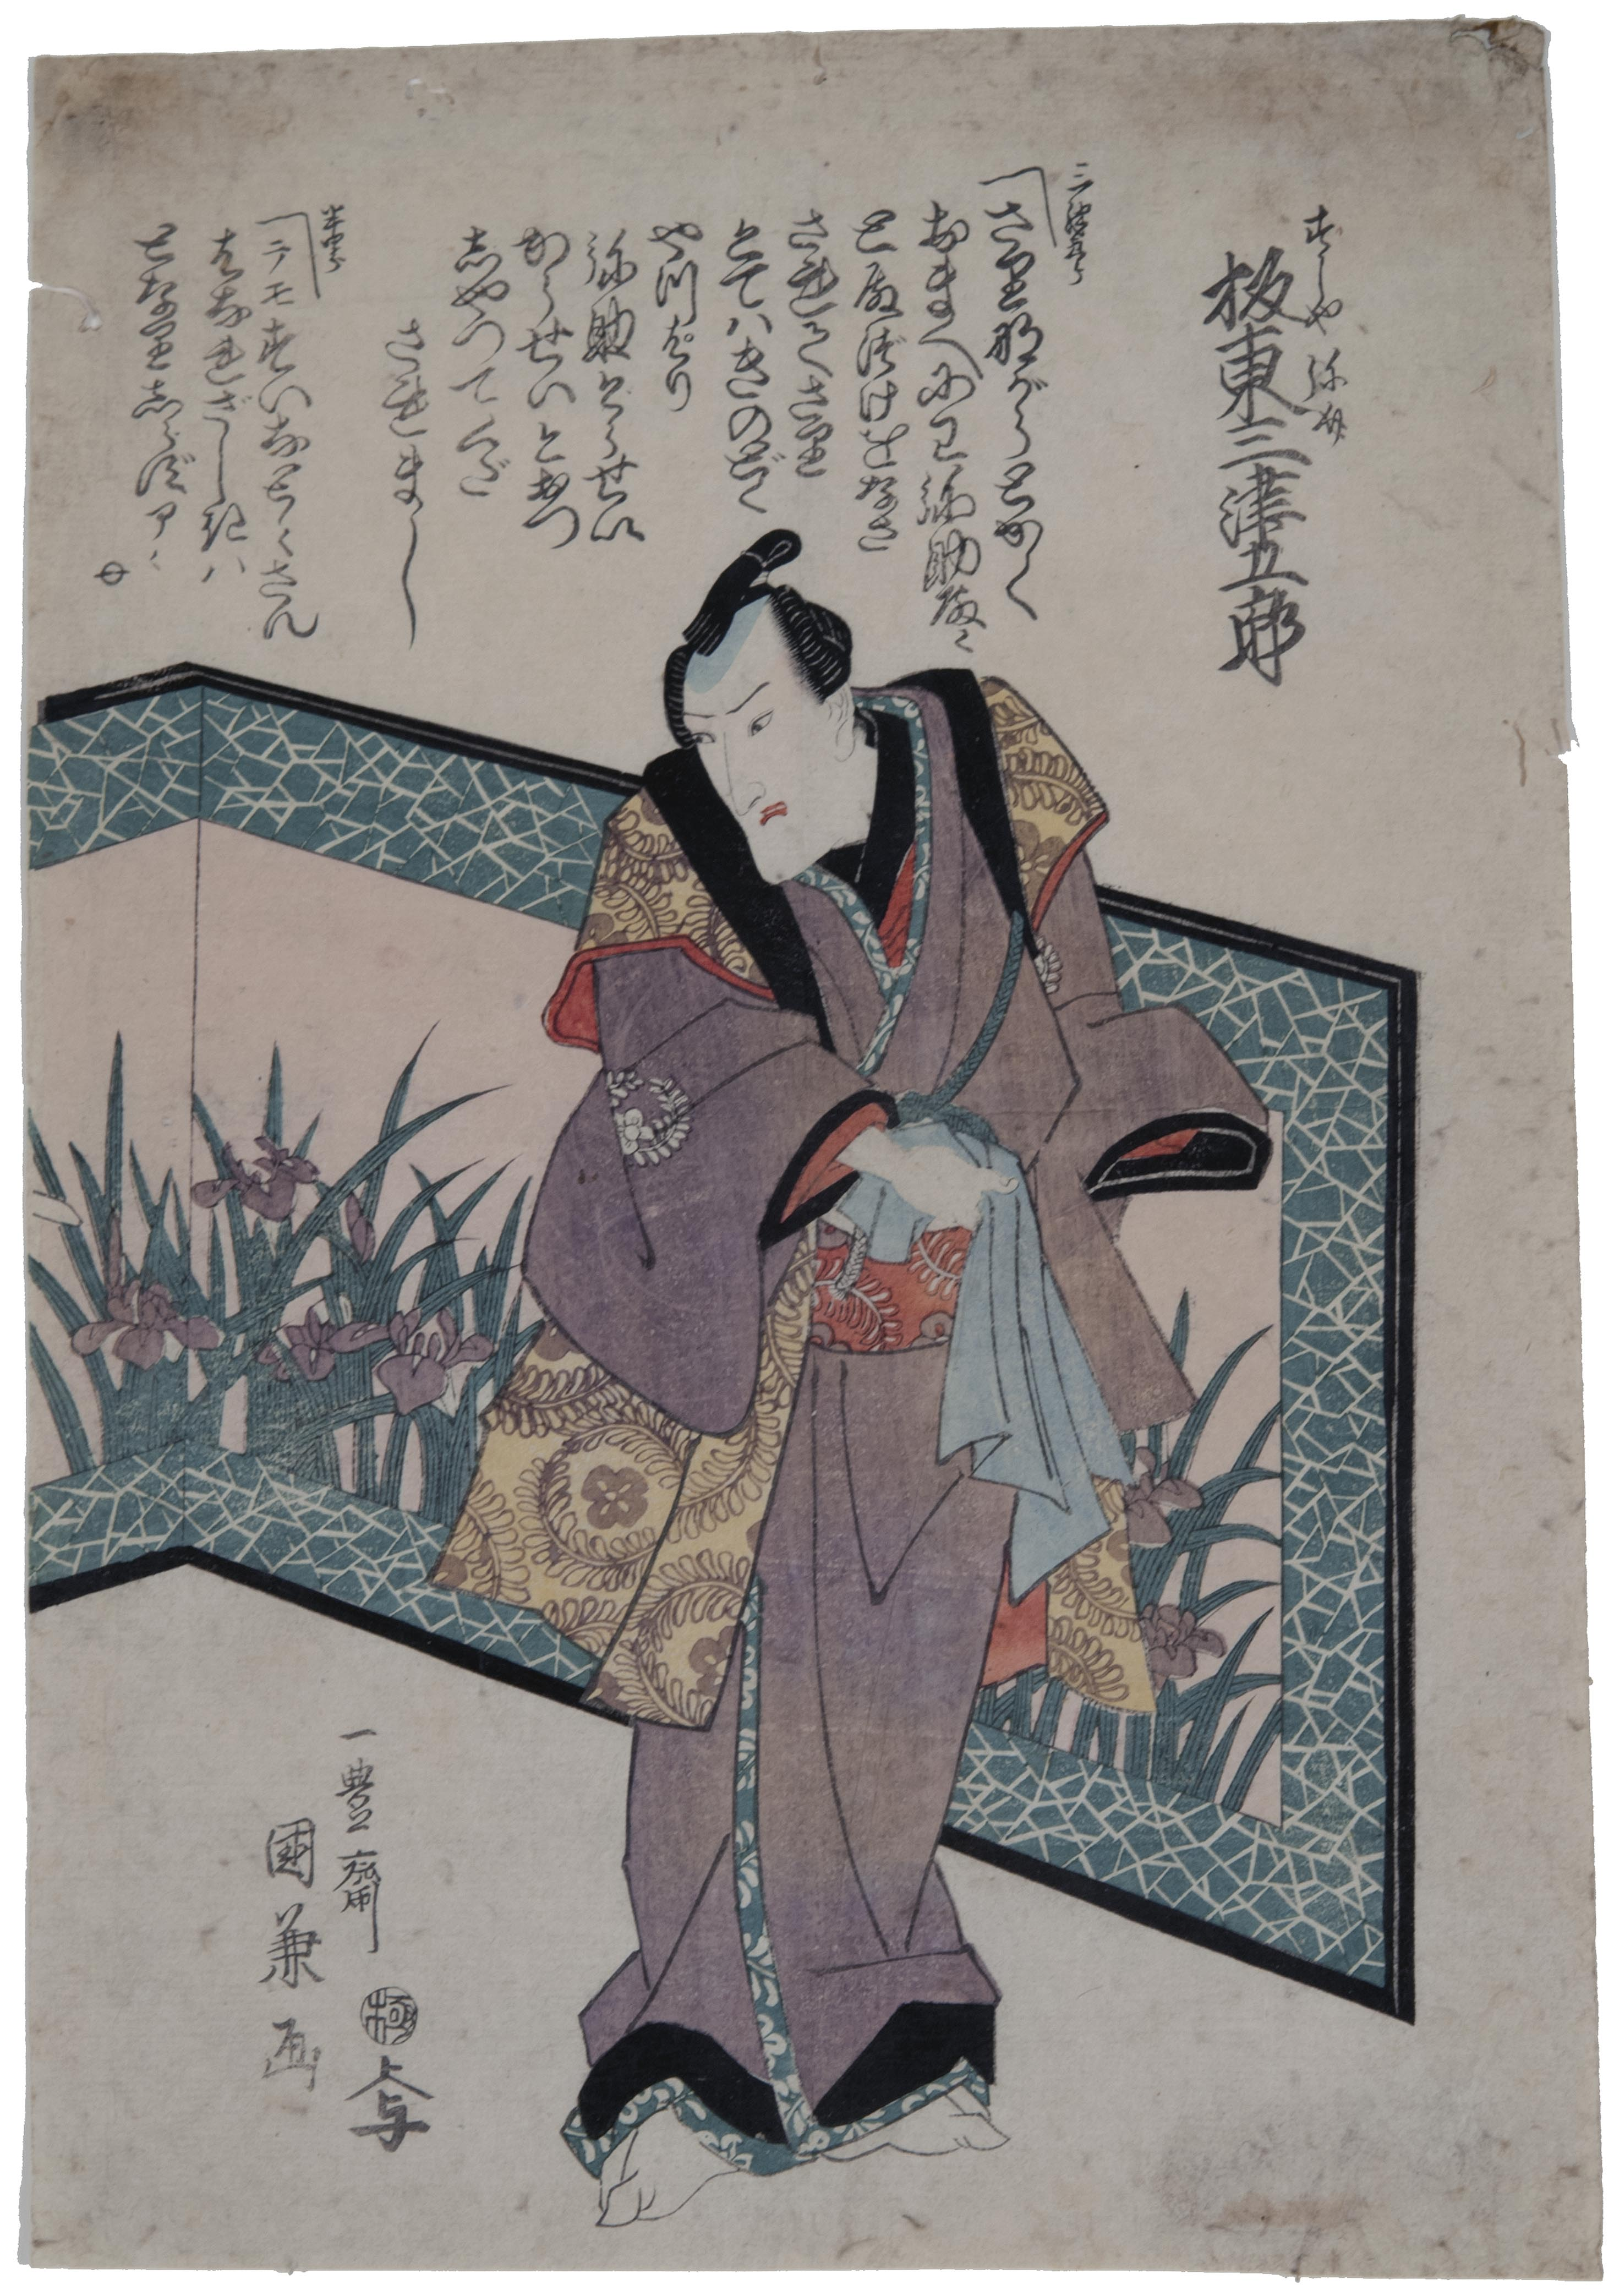 Utagawa Kunikane, The actor Bando Mitsugoro III as the sushi chef Yasuke, 1815-1825